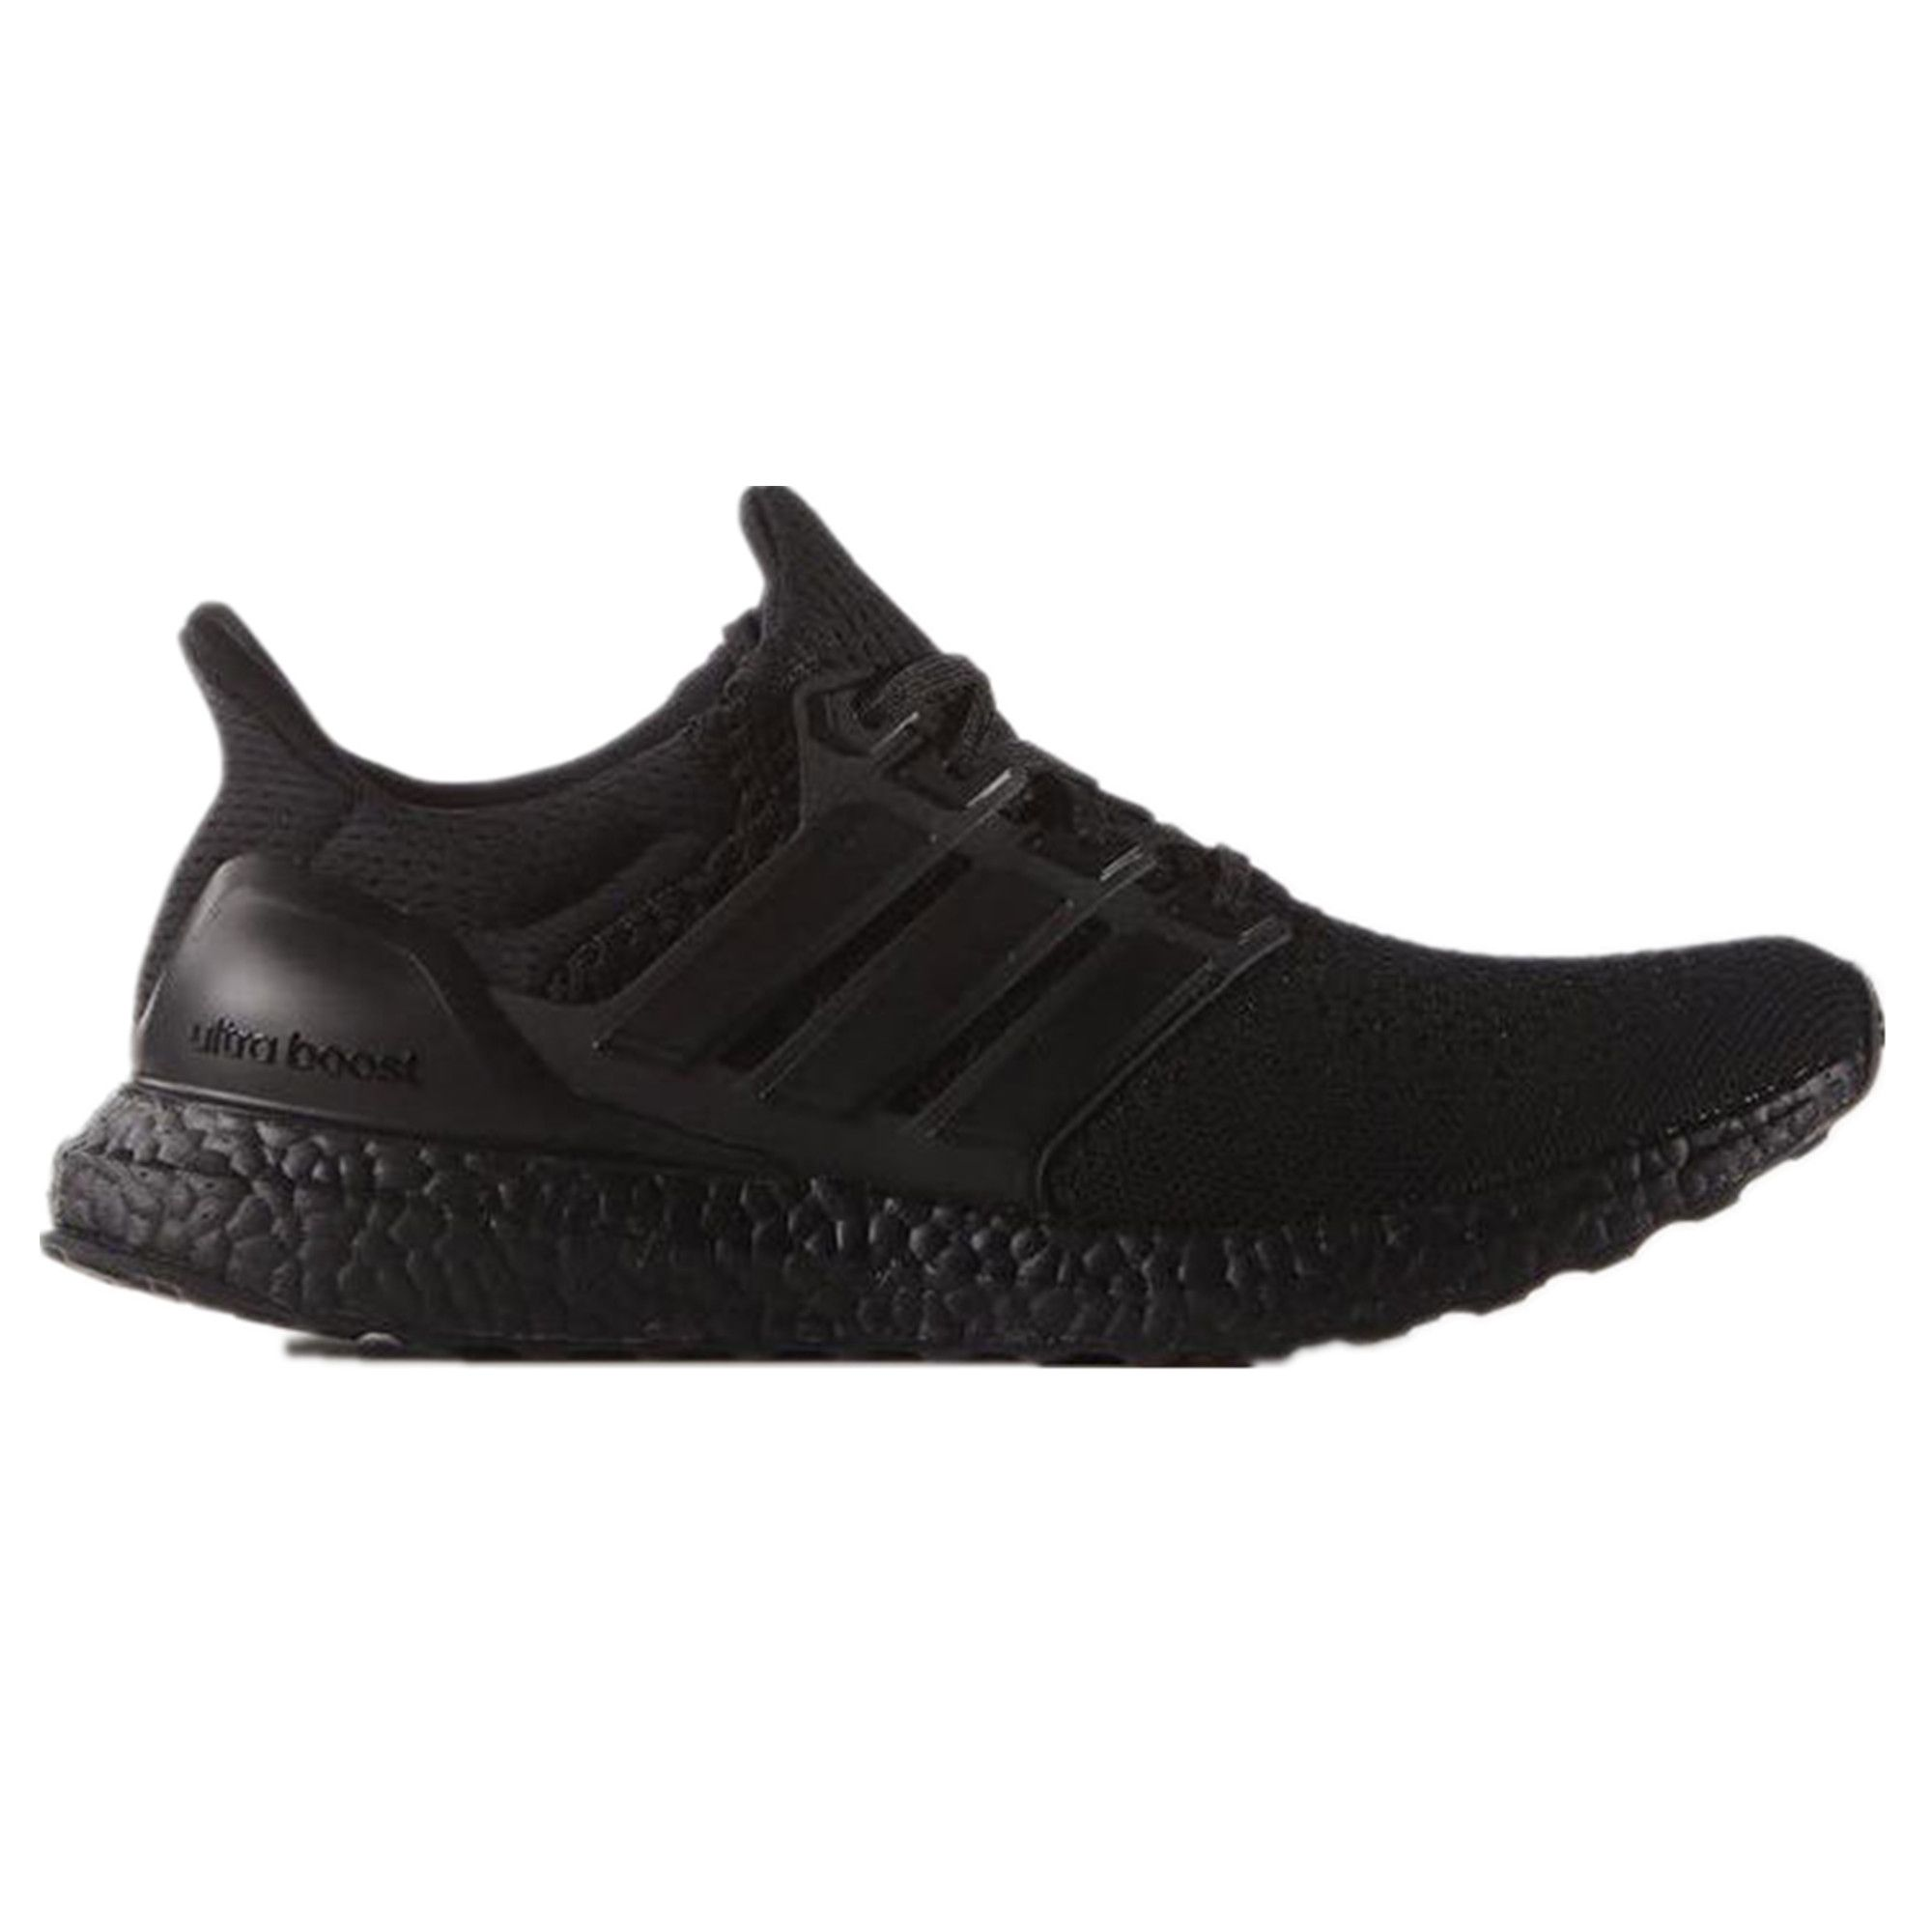 Triple Black adidas Ultra Boost 4.0 Just Dropped